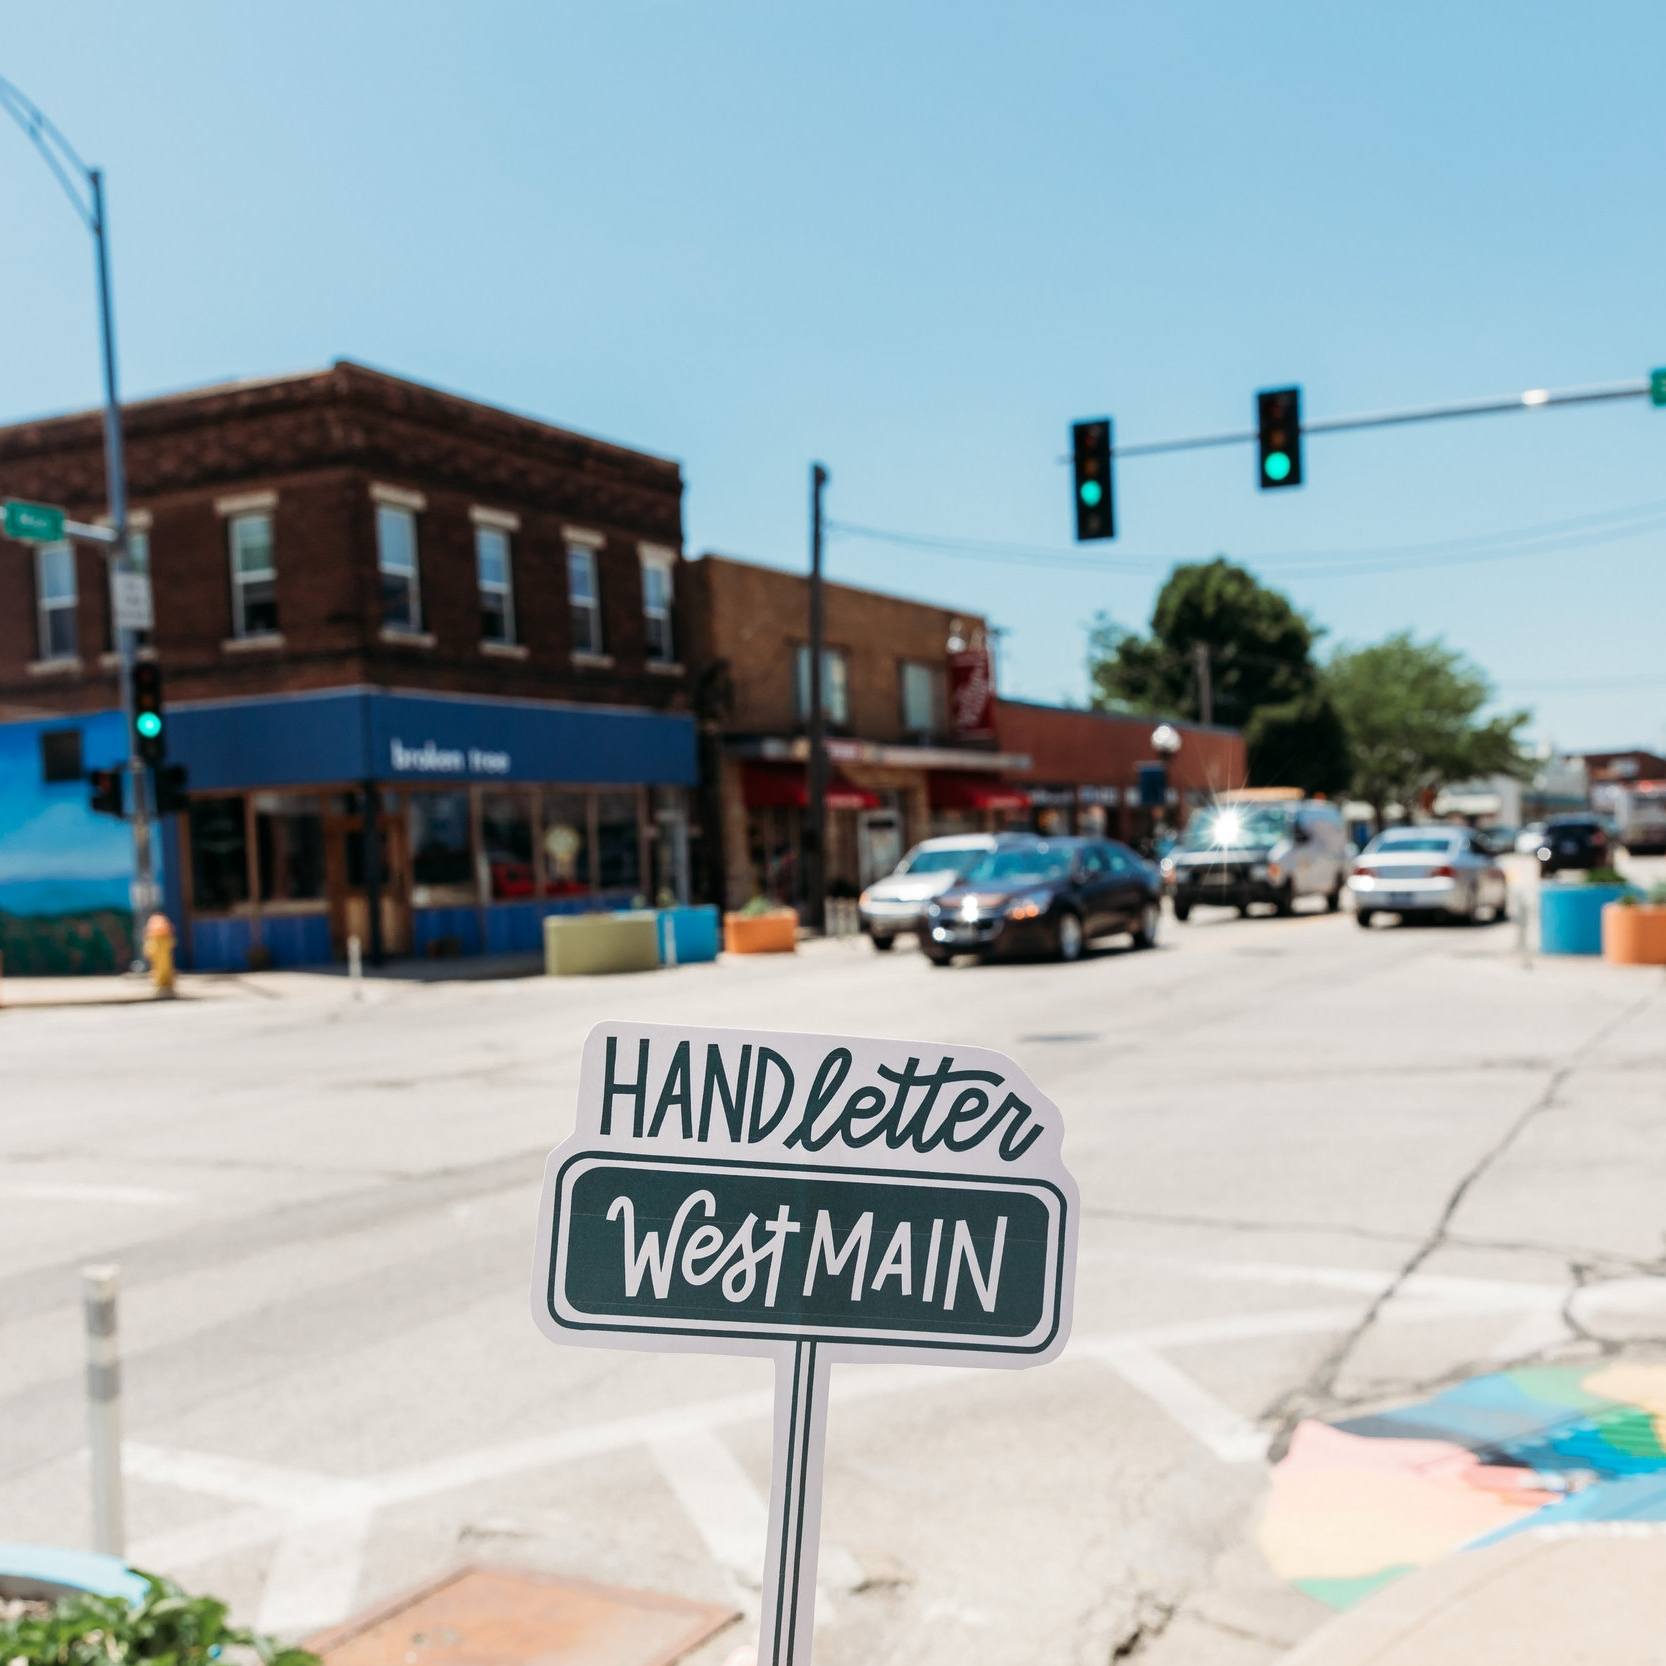 HAND LETTER WEST MAIN - Local creatives, Chelsie & Sarah, beautify West Main Street through creatively updating handwritten signage in local businesses' storefronts and show the difference intentional design can make through professional photography.